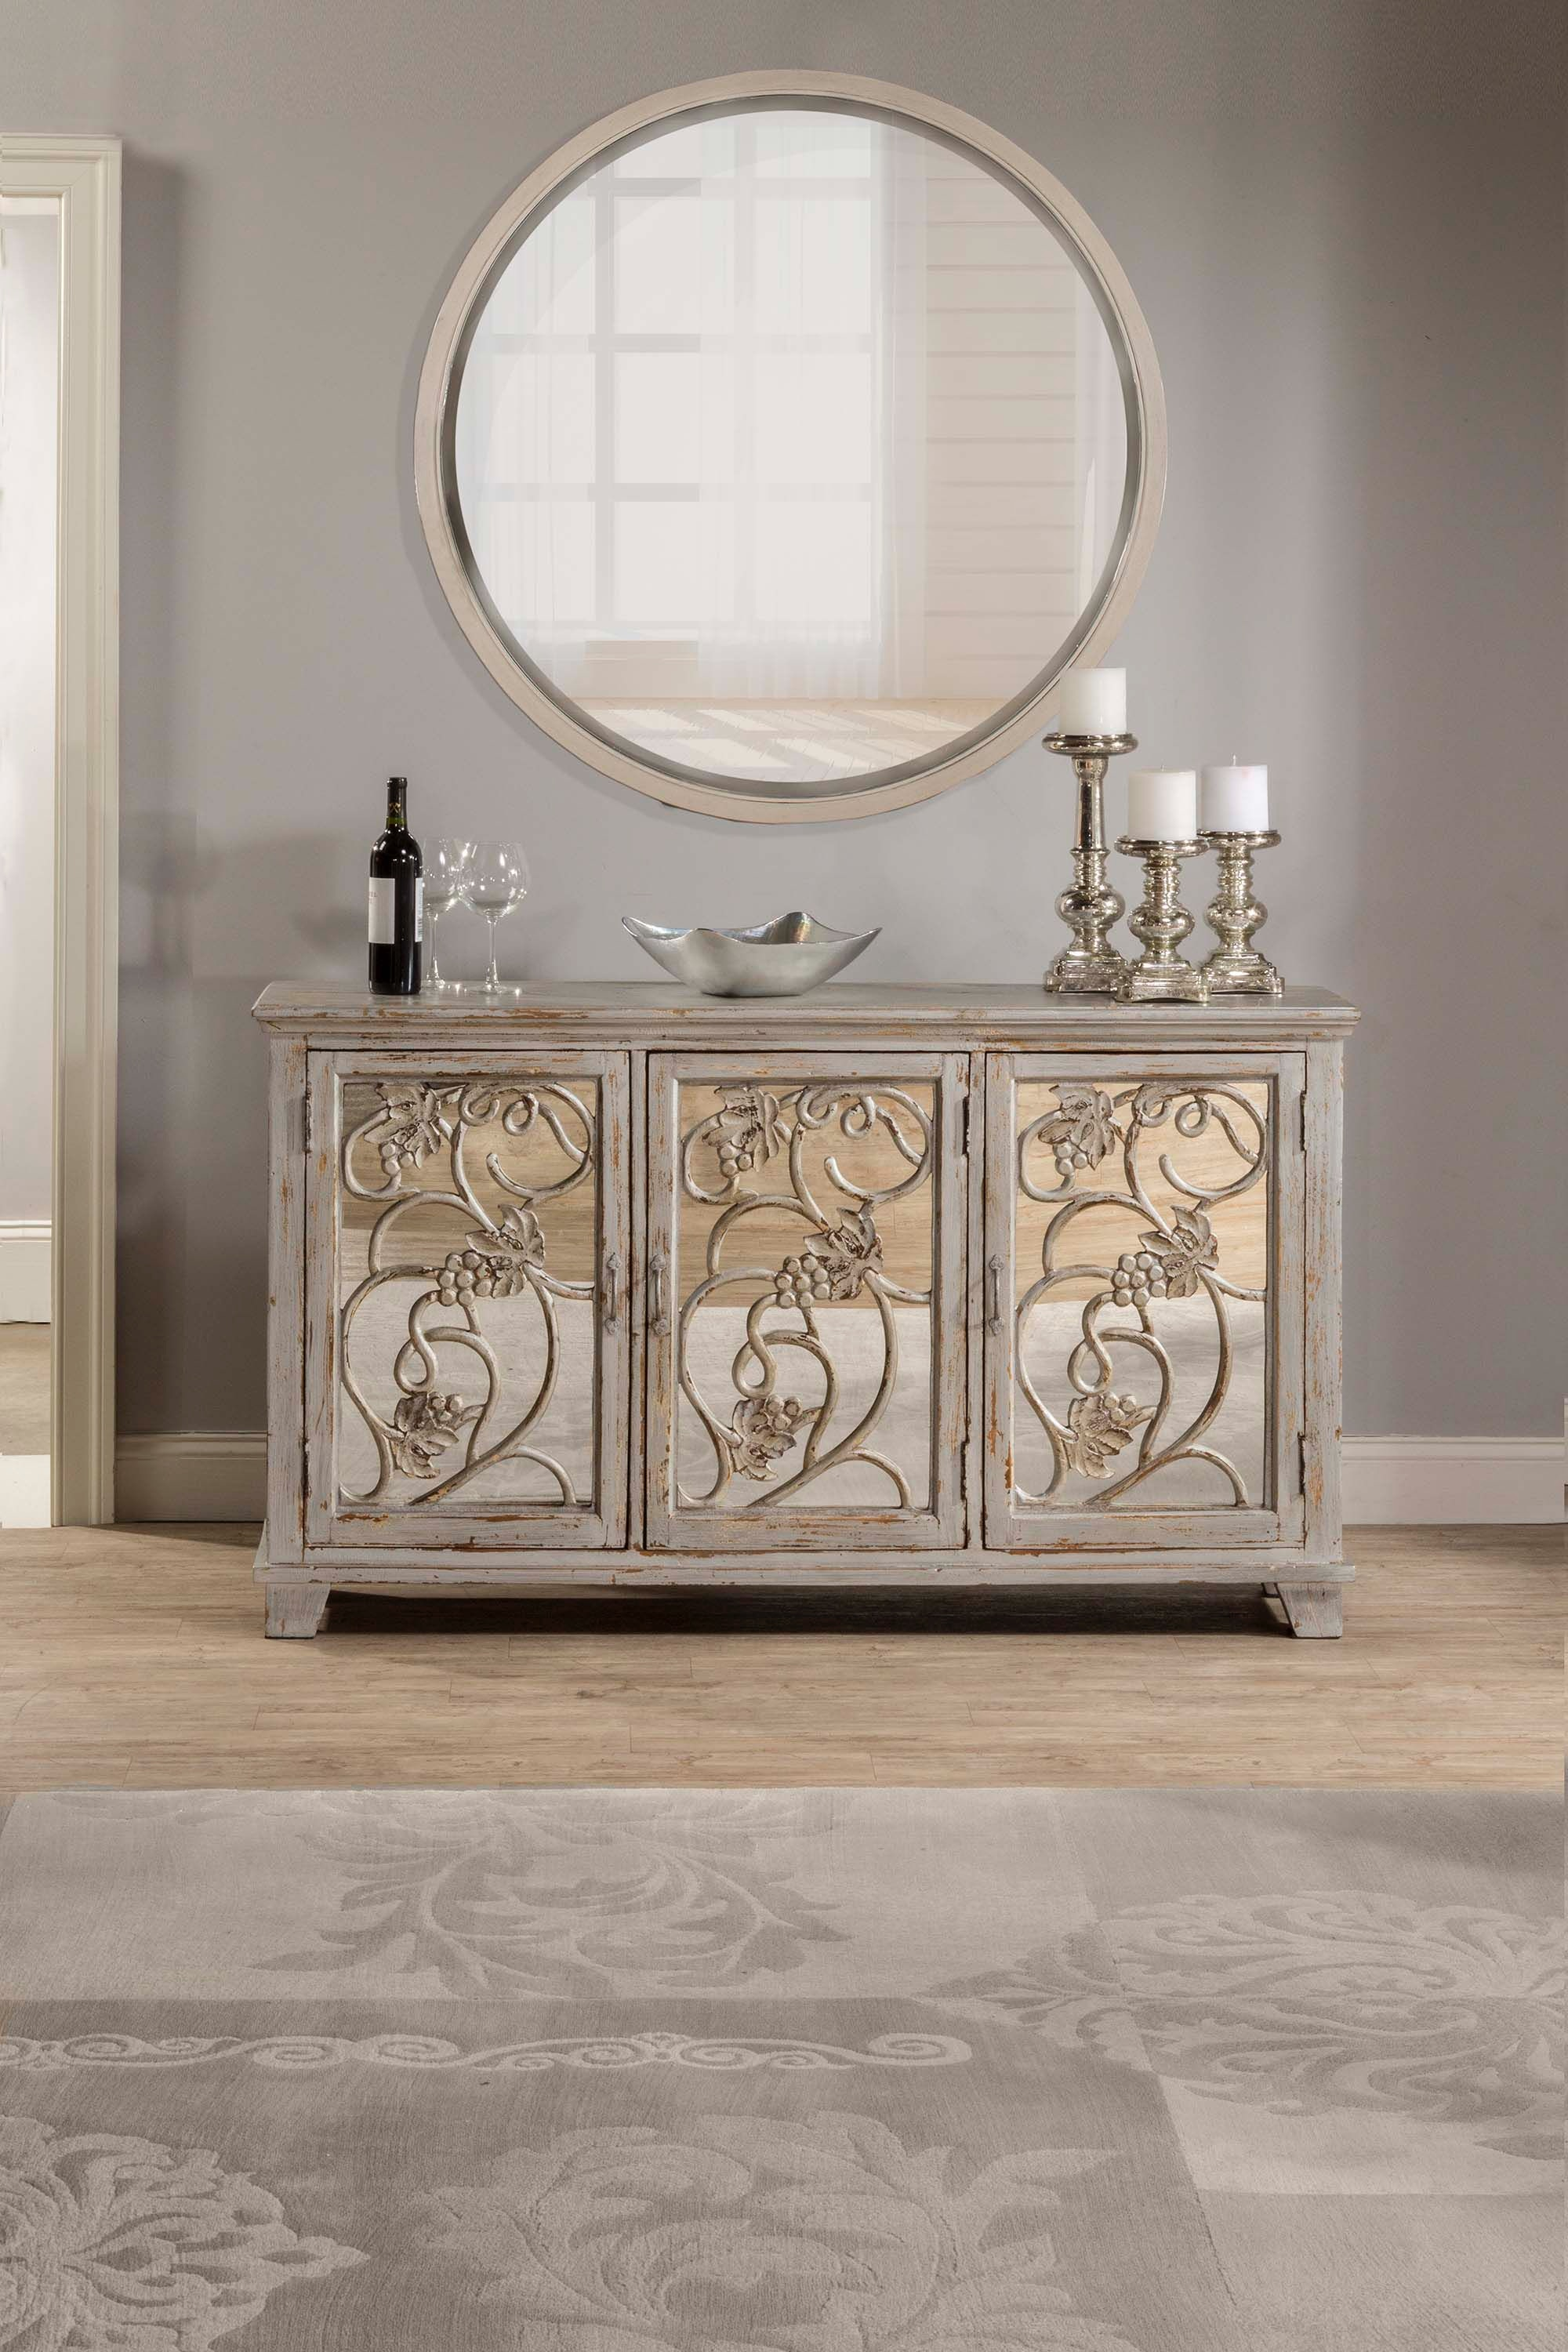 Hillsdale furniture living room malbec decorative mirrored console table details inspired